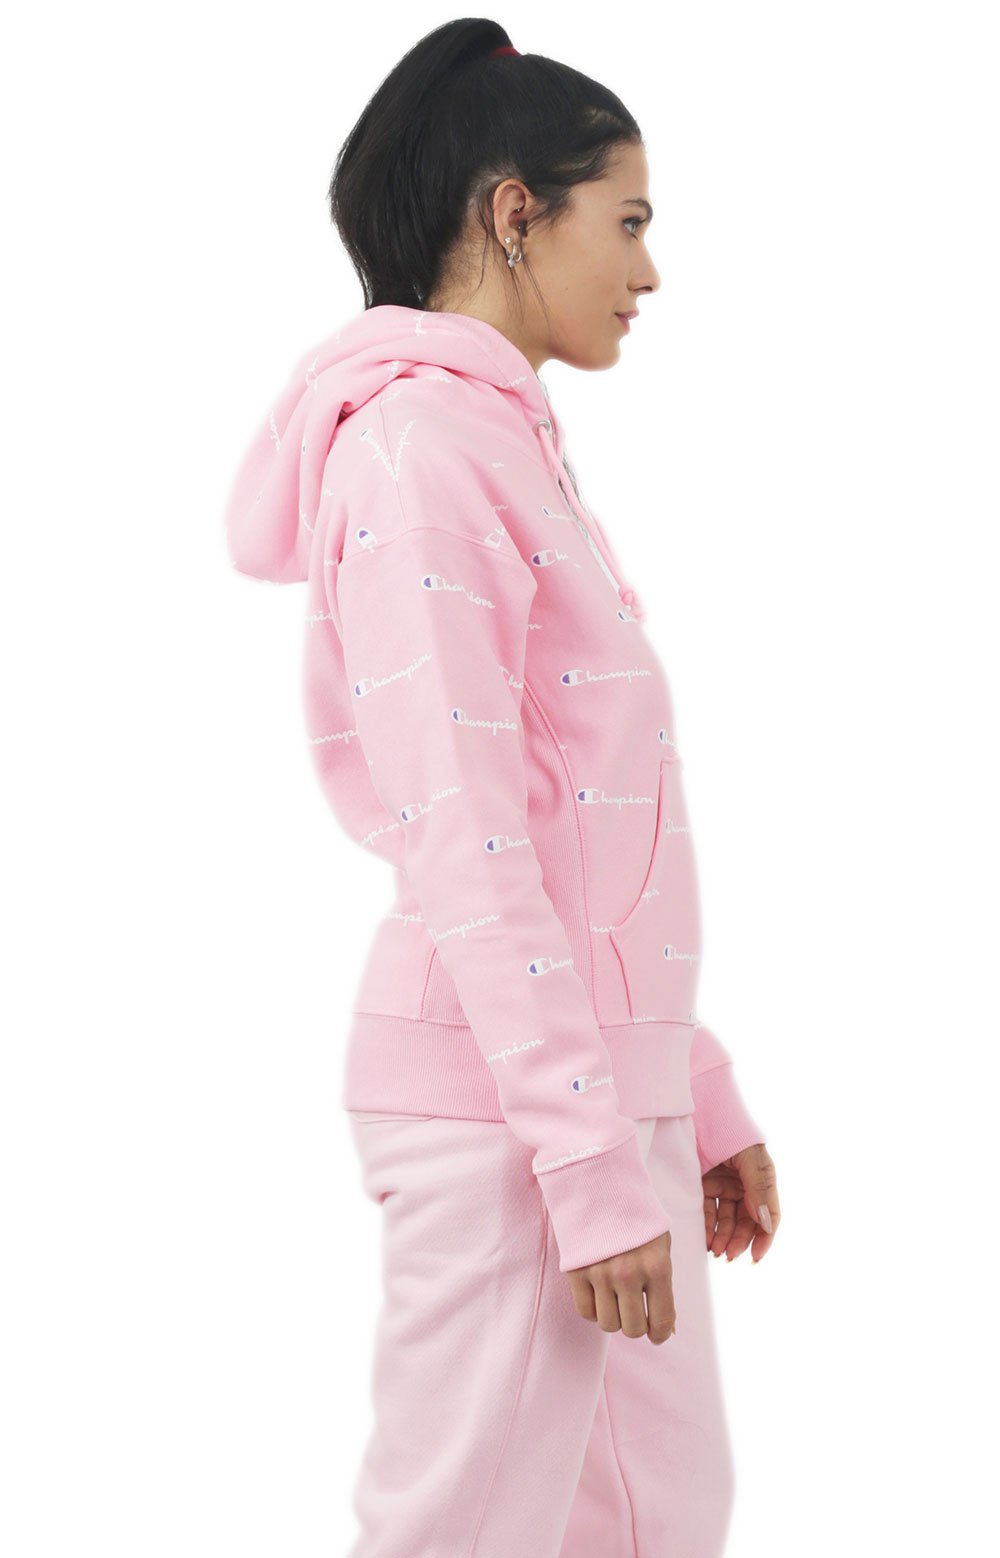 Reverse Weave A/O Script Pullover Hoodie - Pink Candy  2